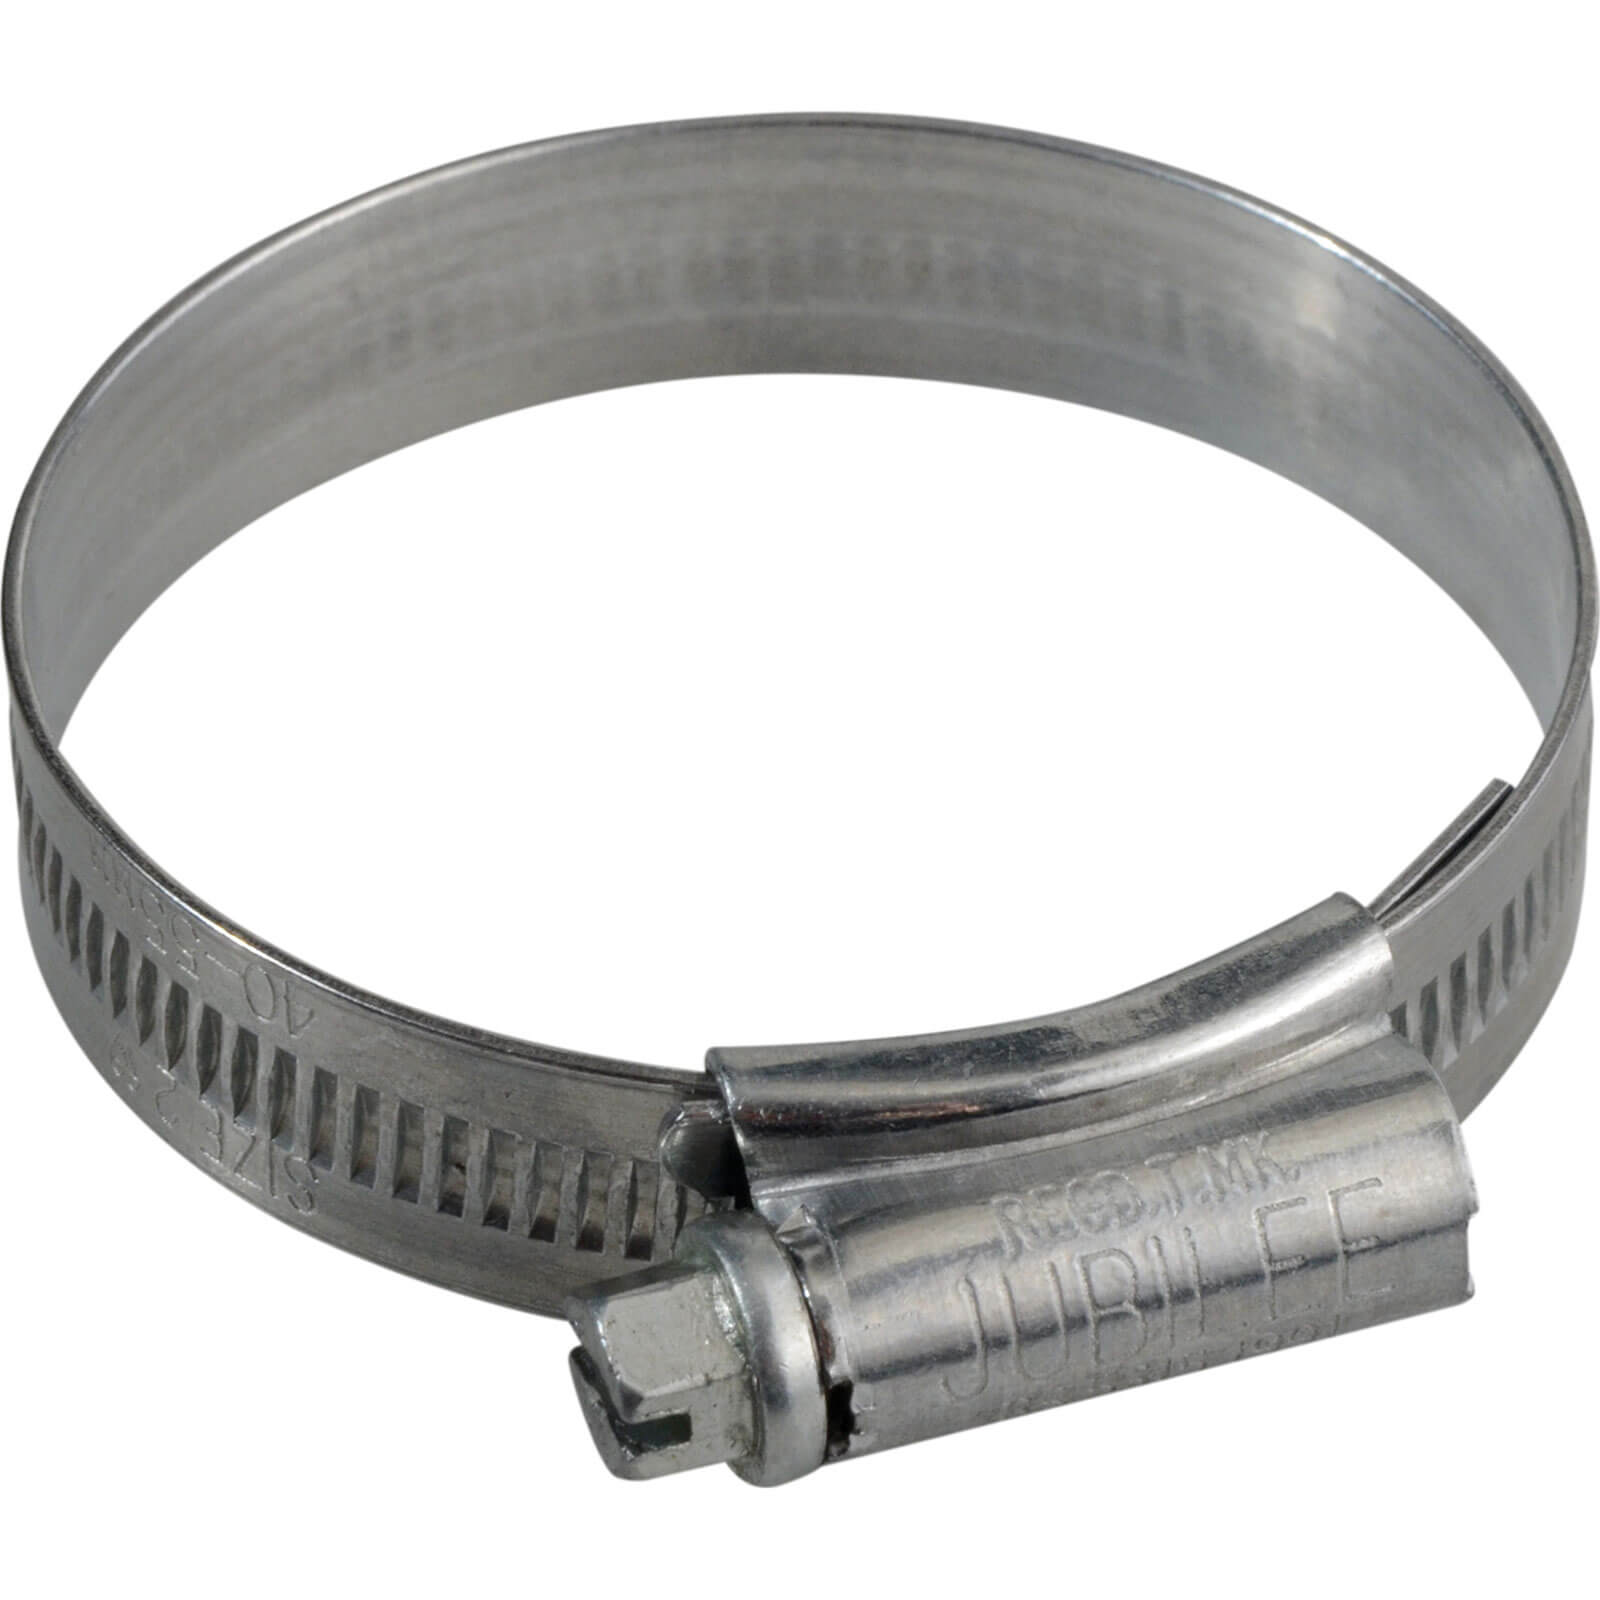 Image of Jubilee Zinc Plated Hose Clip 40mm - 55mm Pack of 1